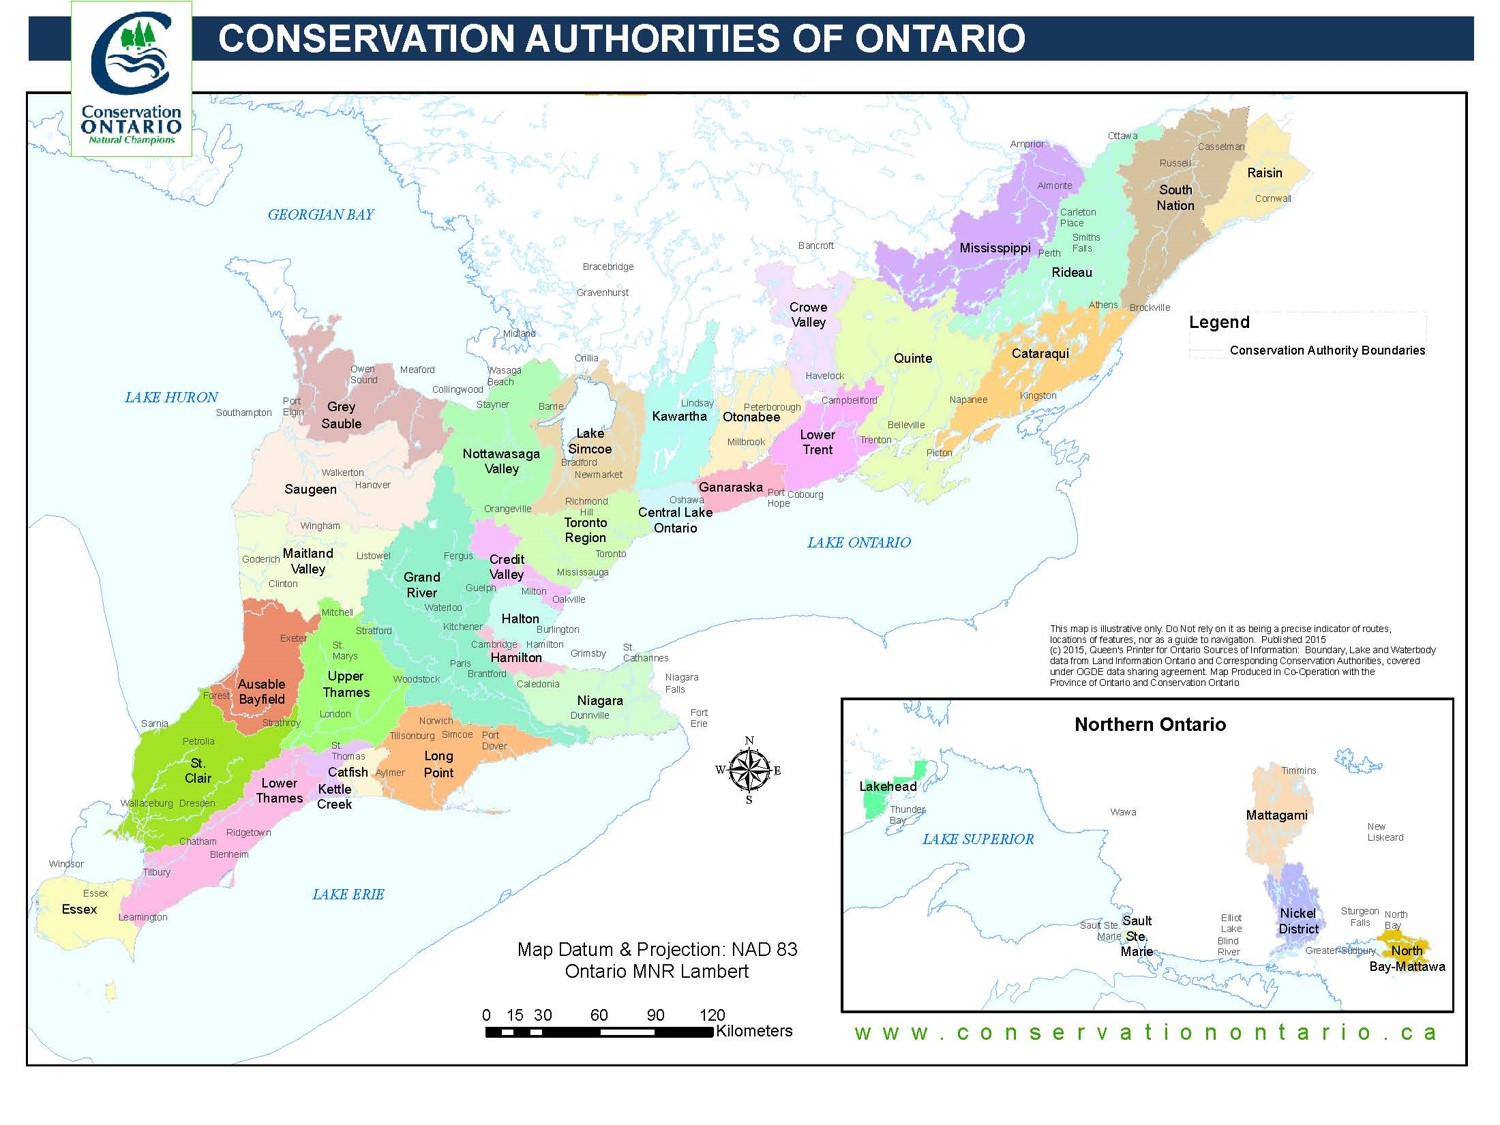 Conservation_Authorities_In_Ontario.jpg